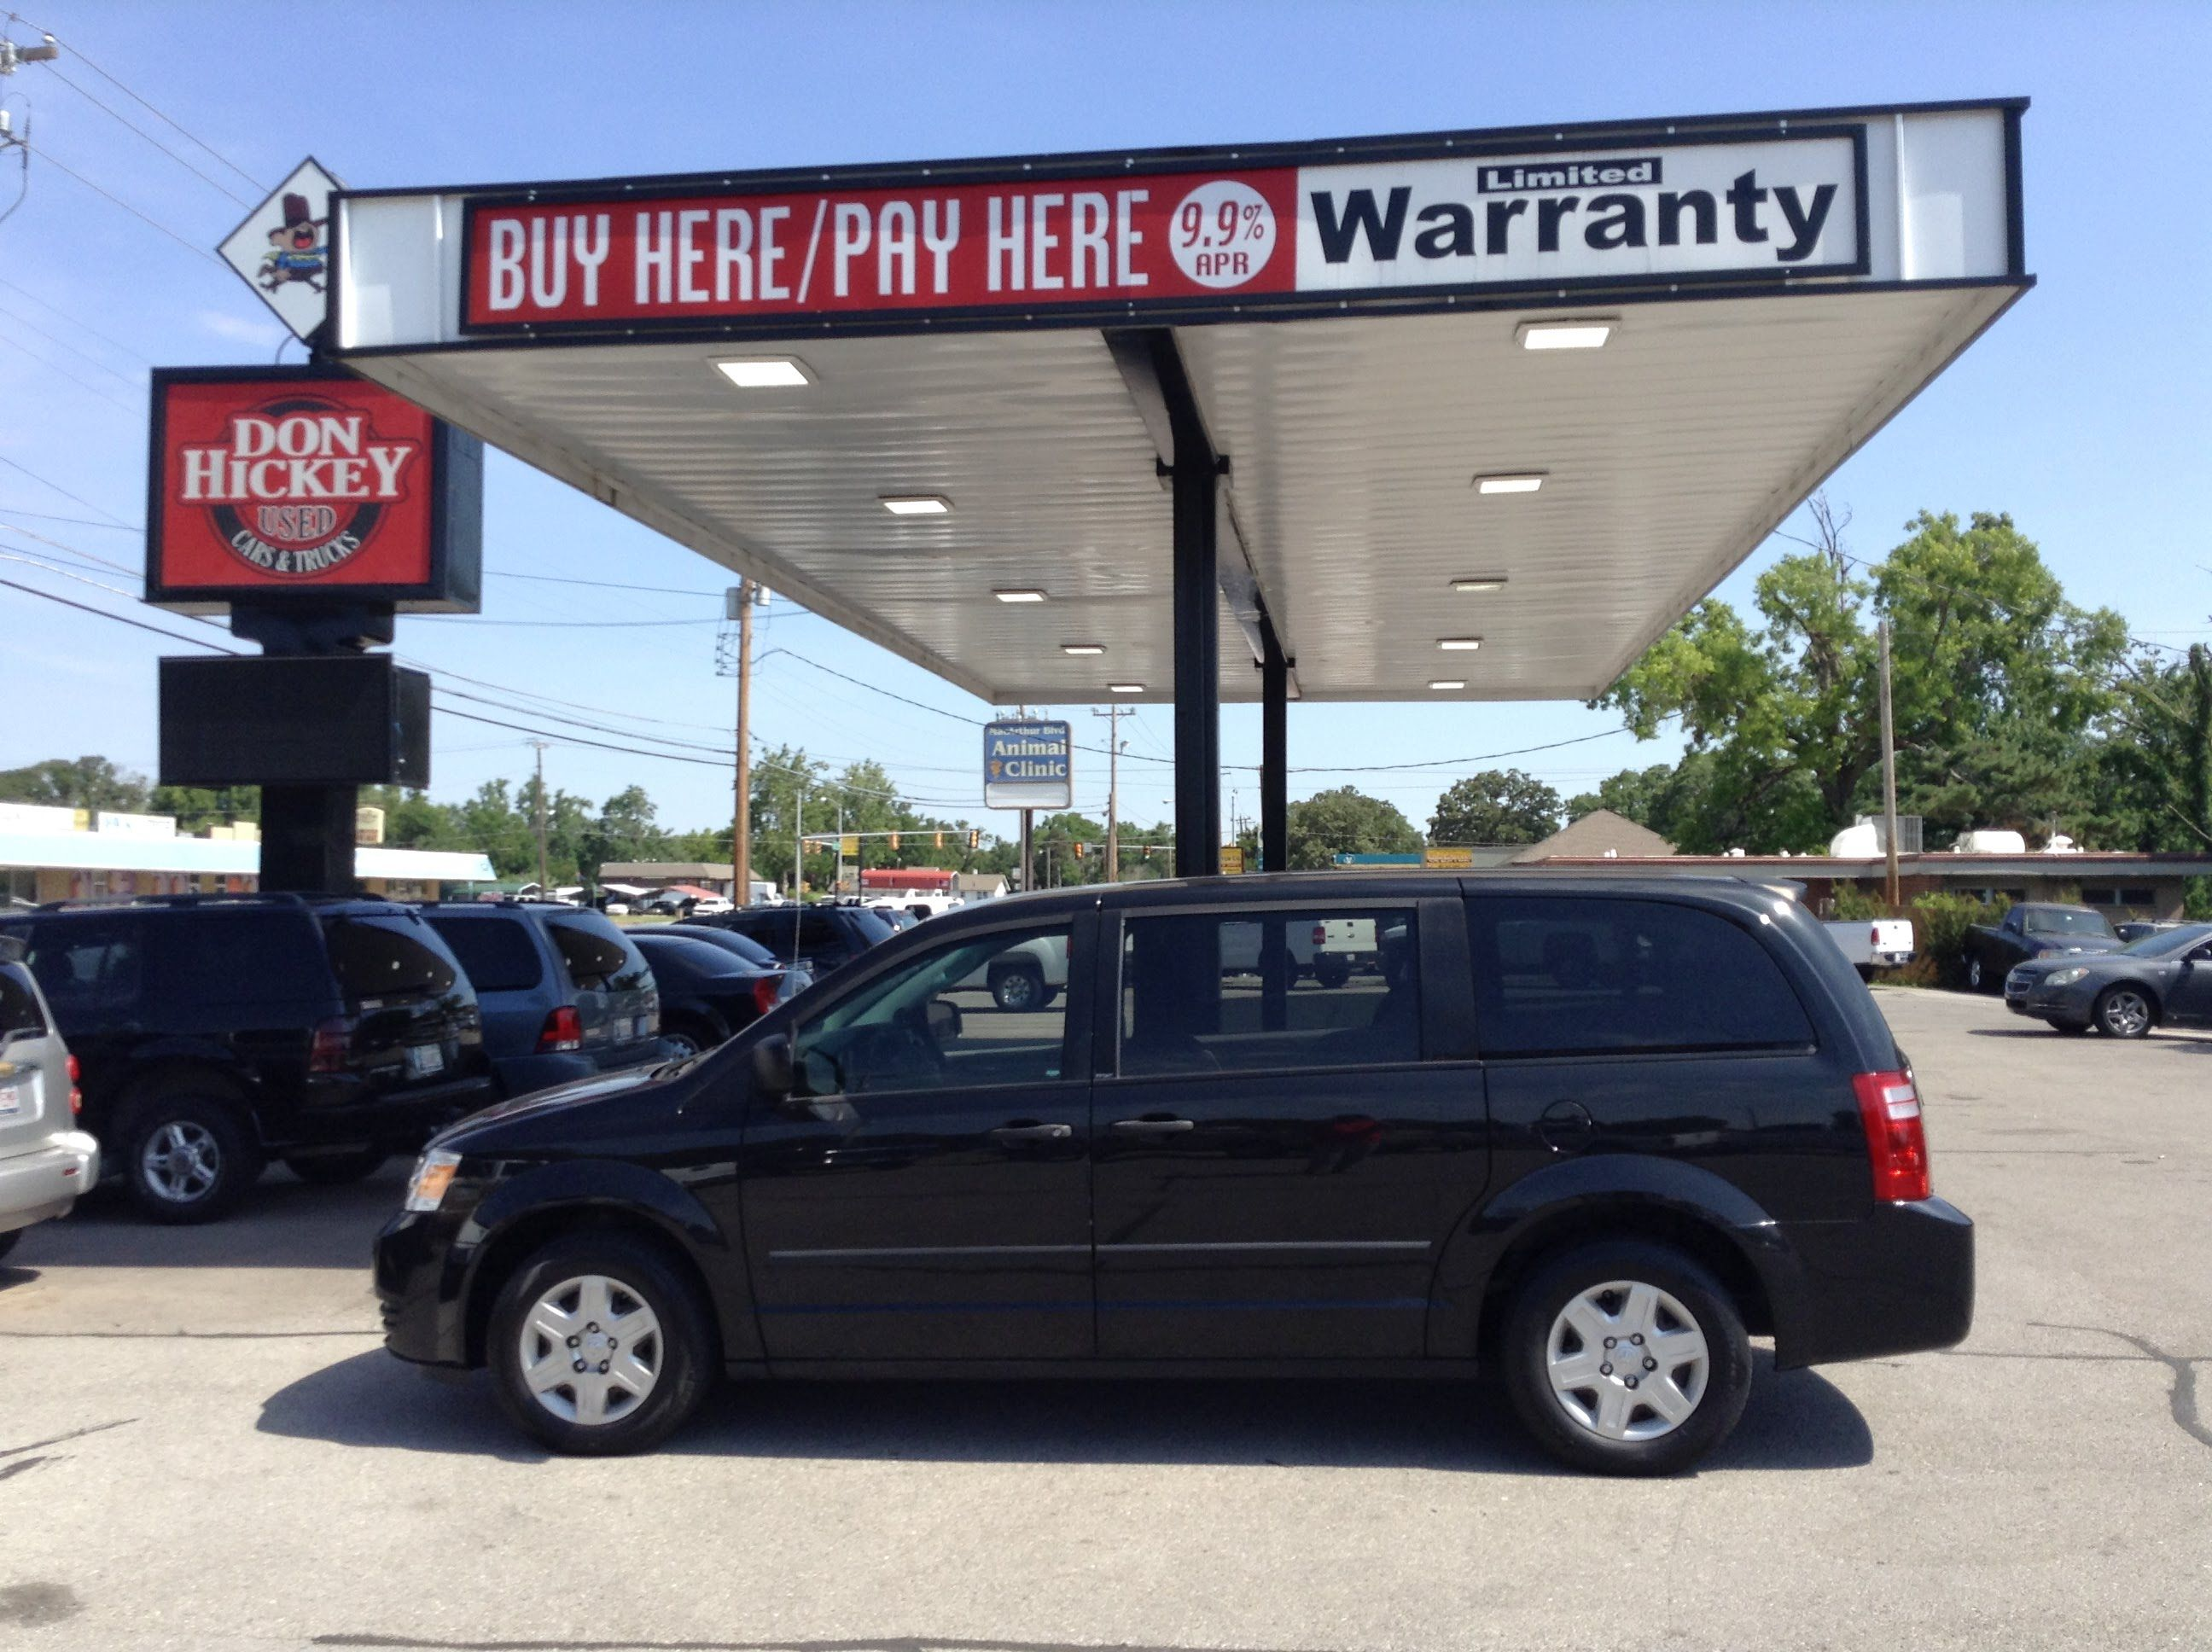 Where is the best place to buy a used car in okc? 947-1833 ...